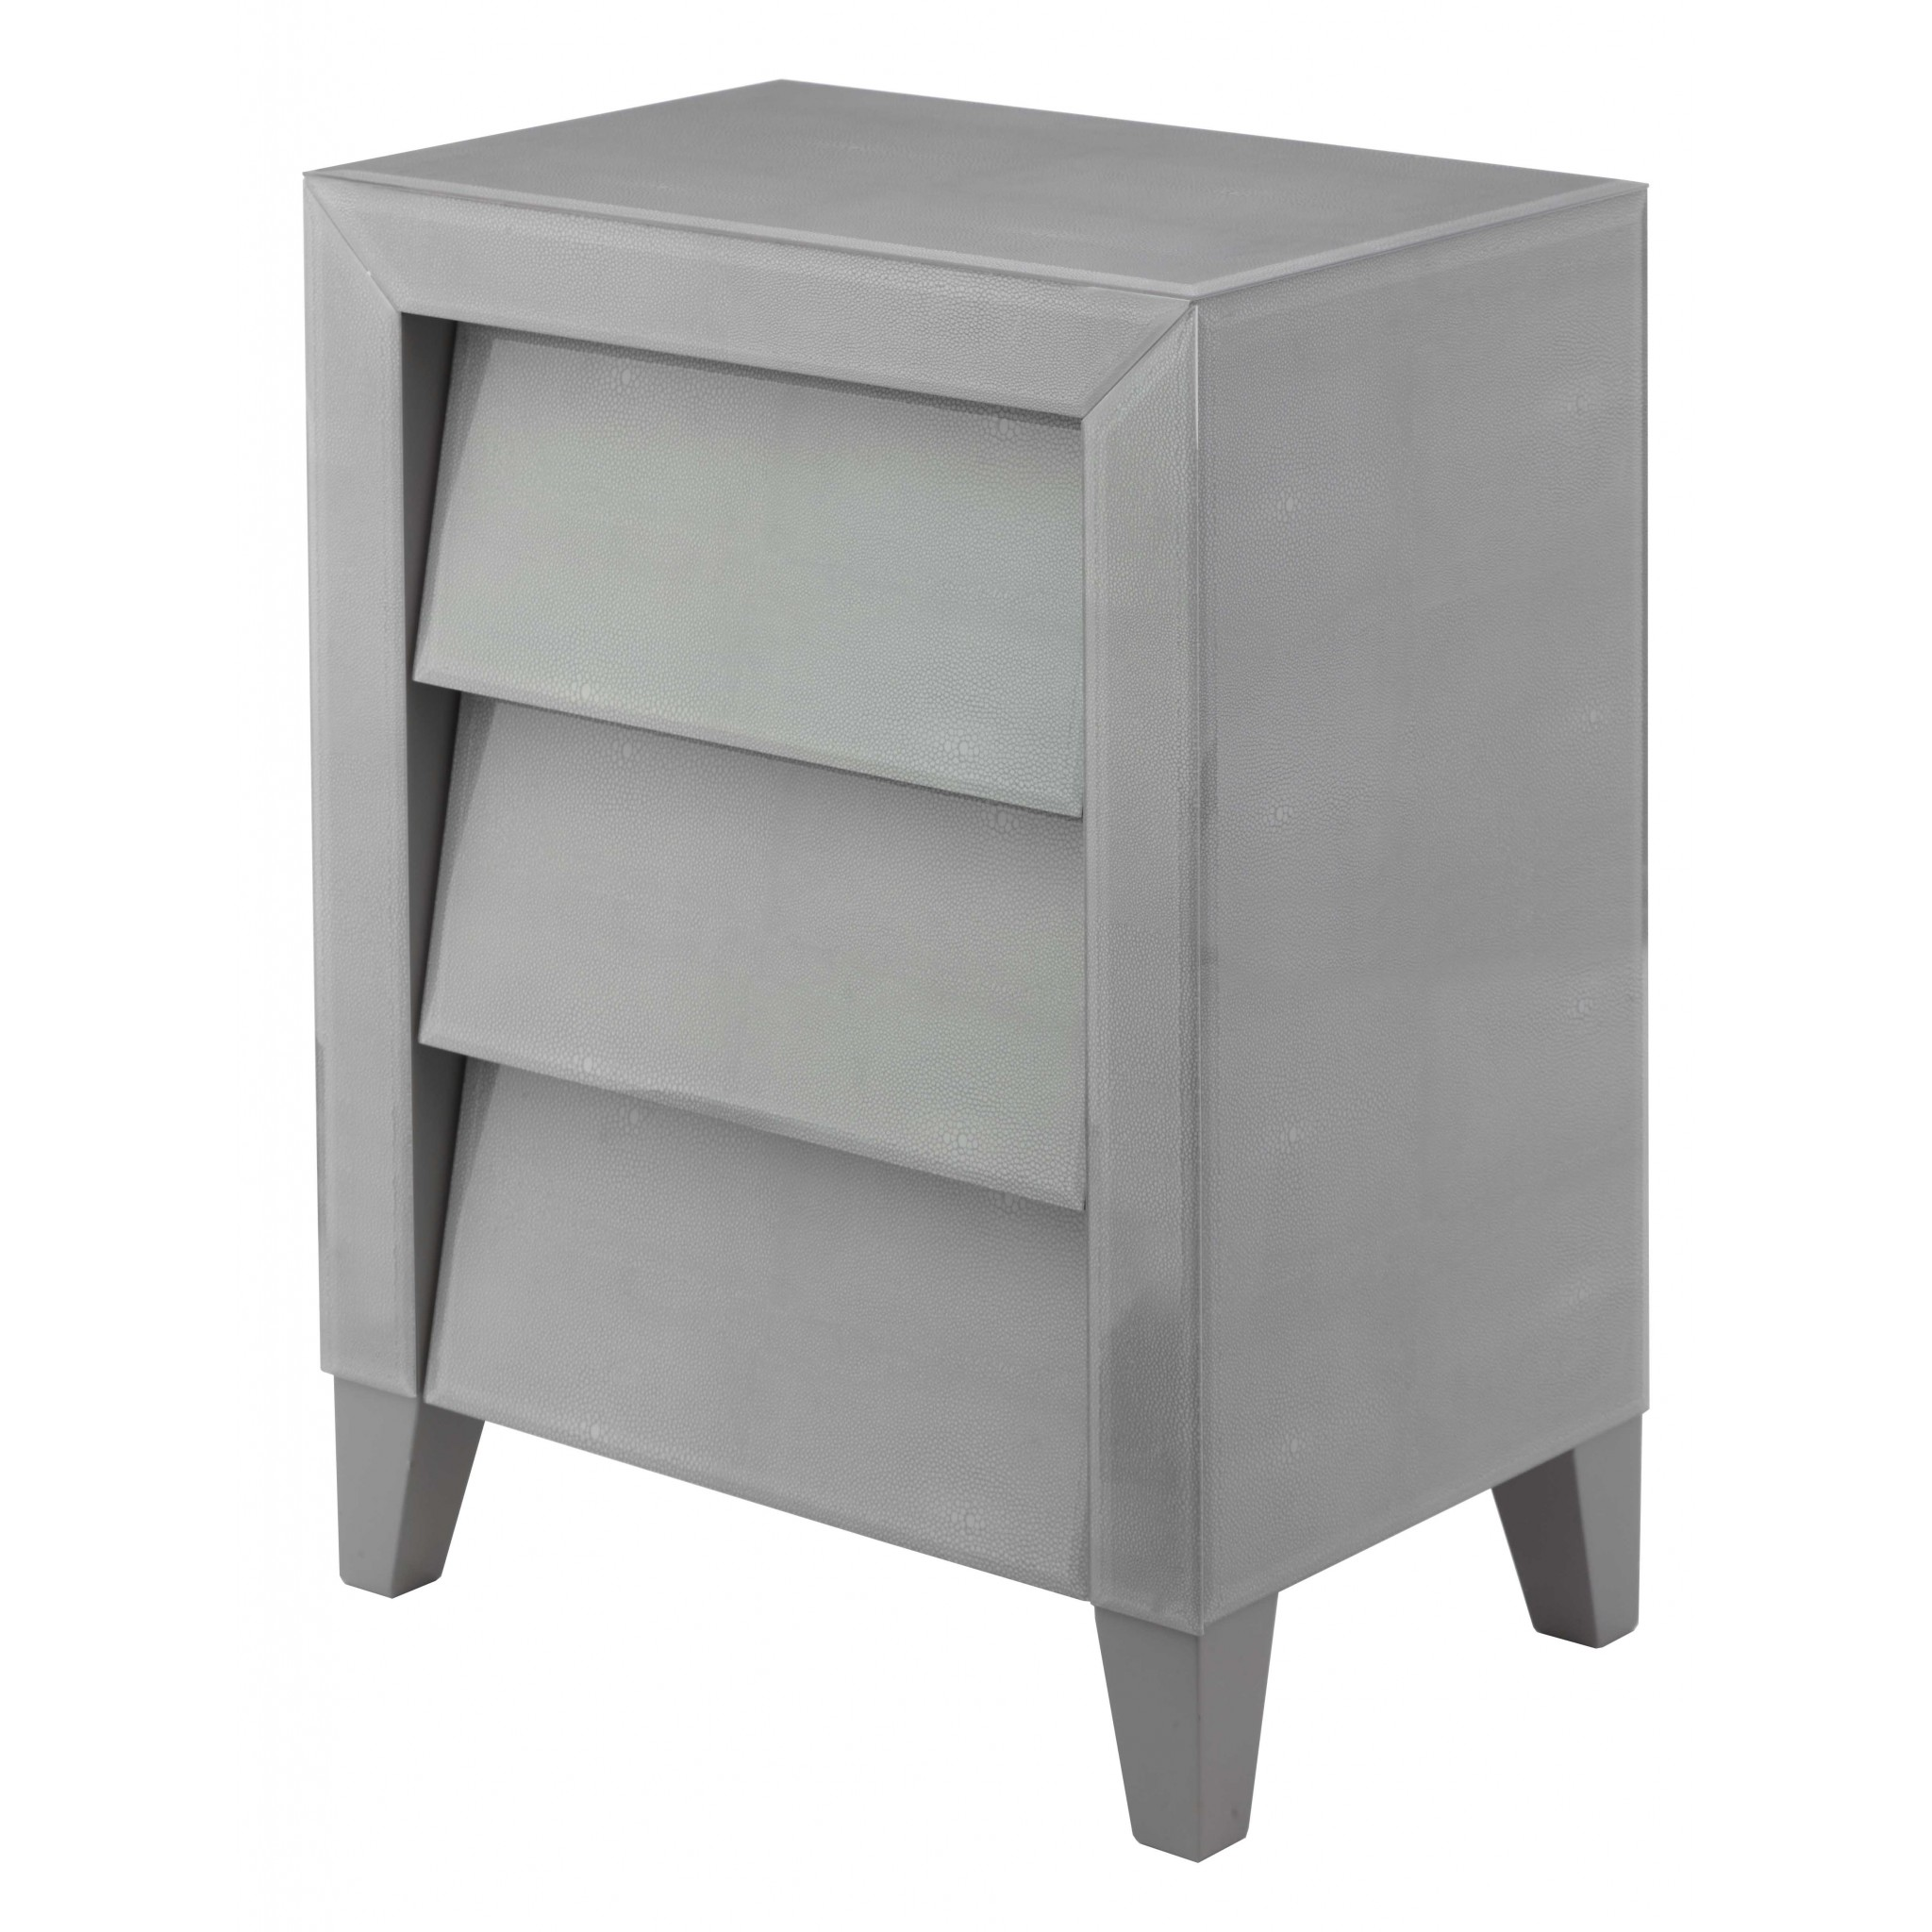 RV Astley Colby Soft Grey Shagreen 3 Drawer Side Table